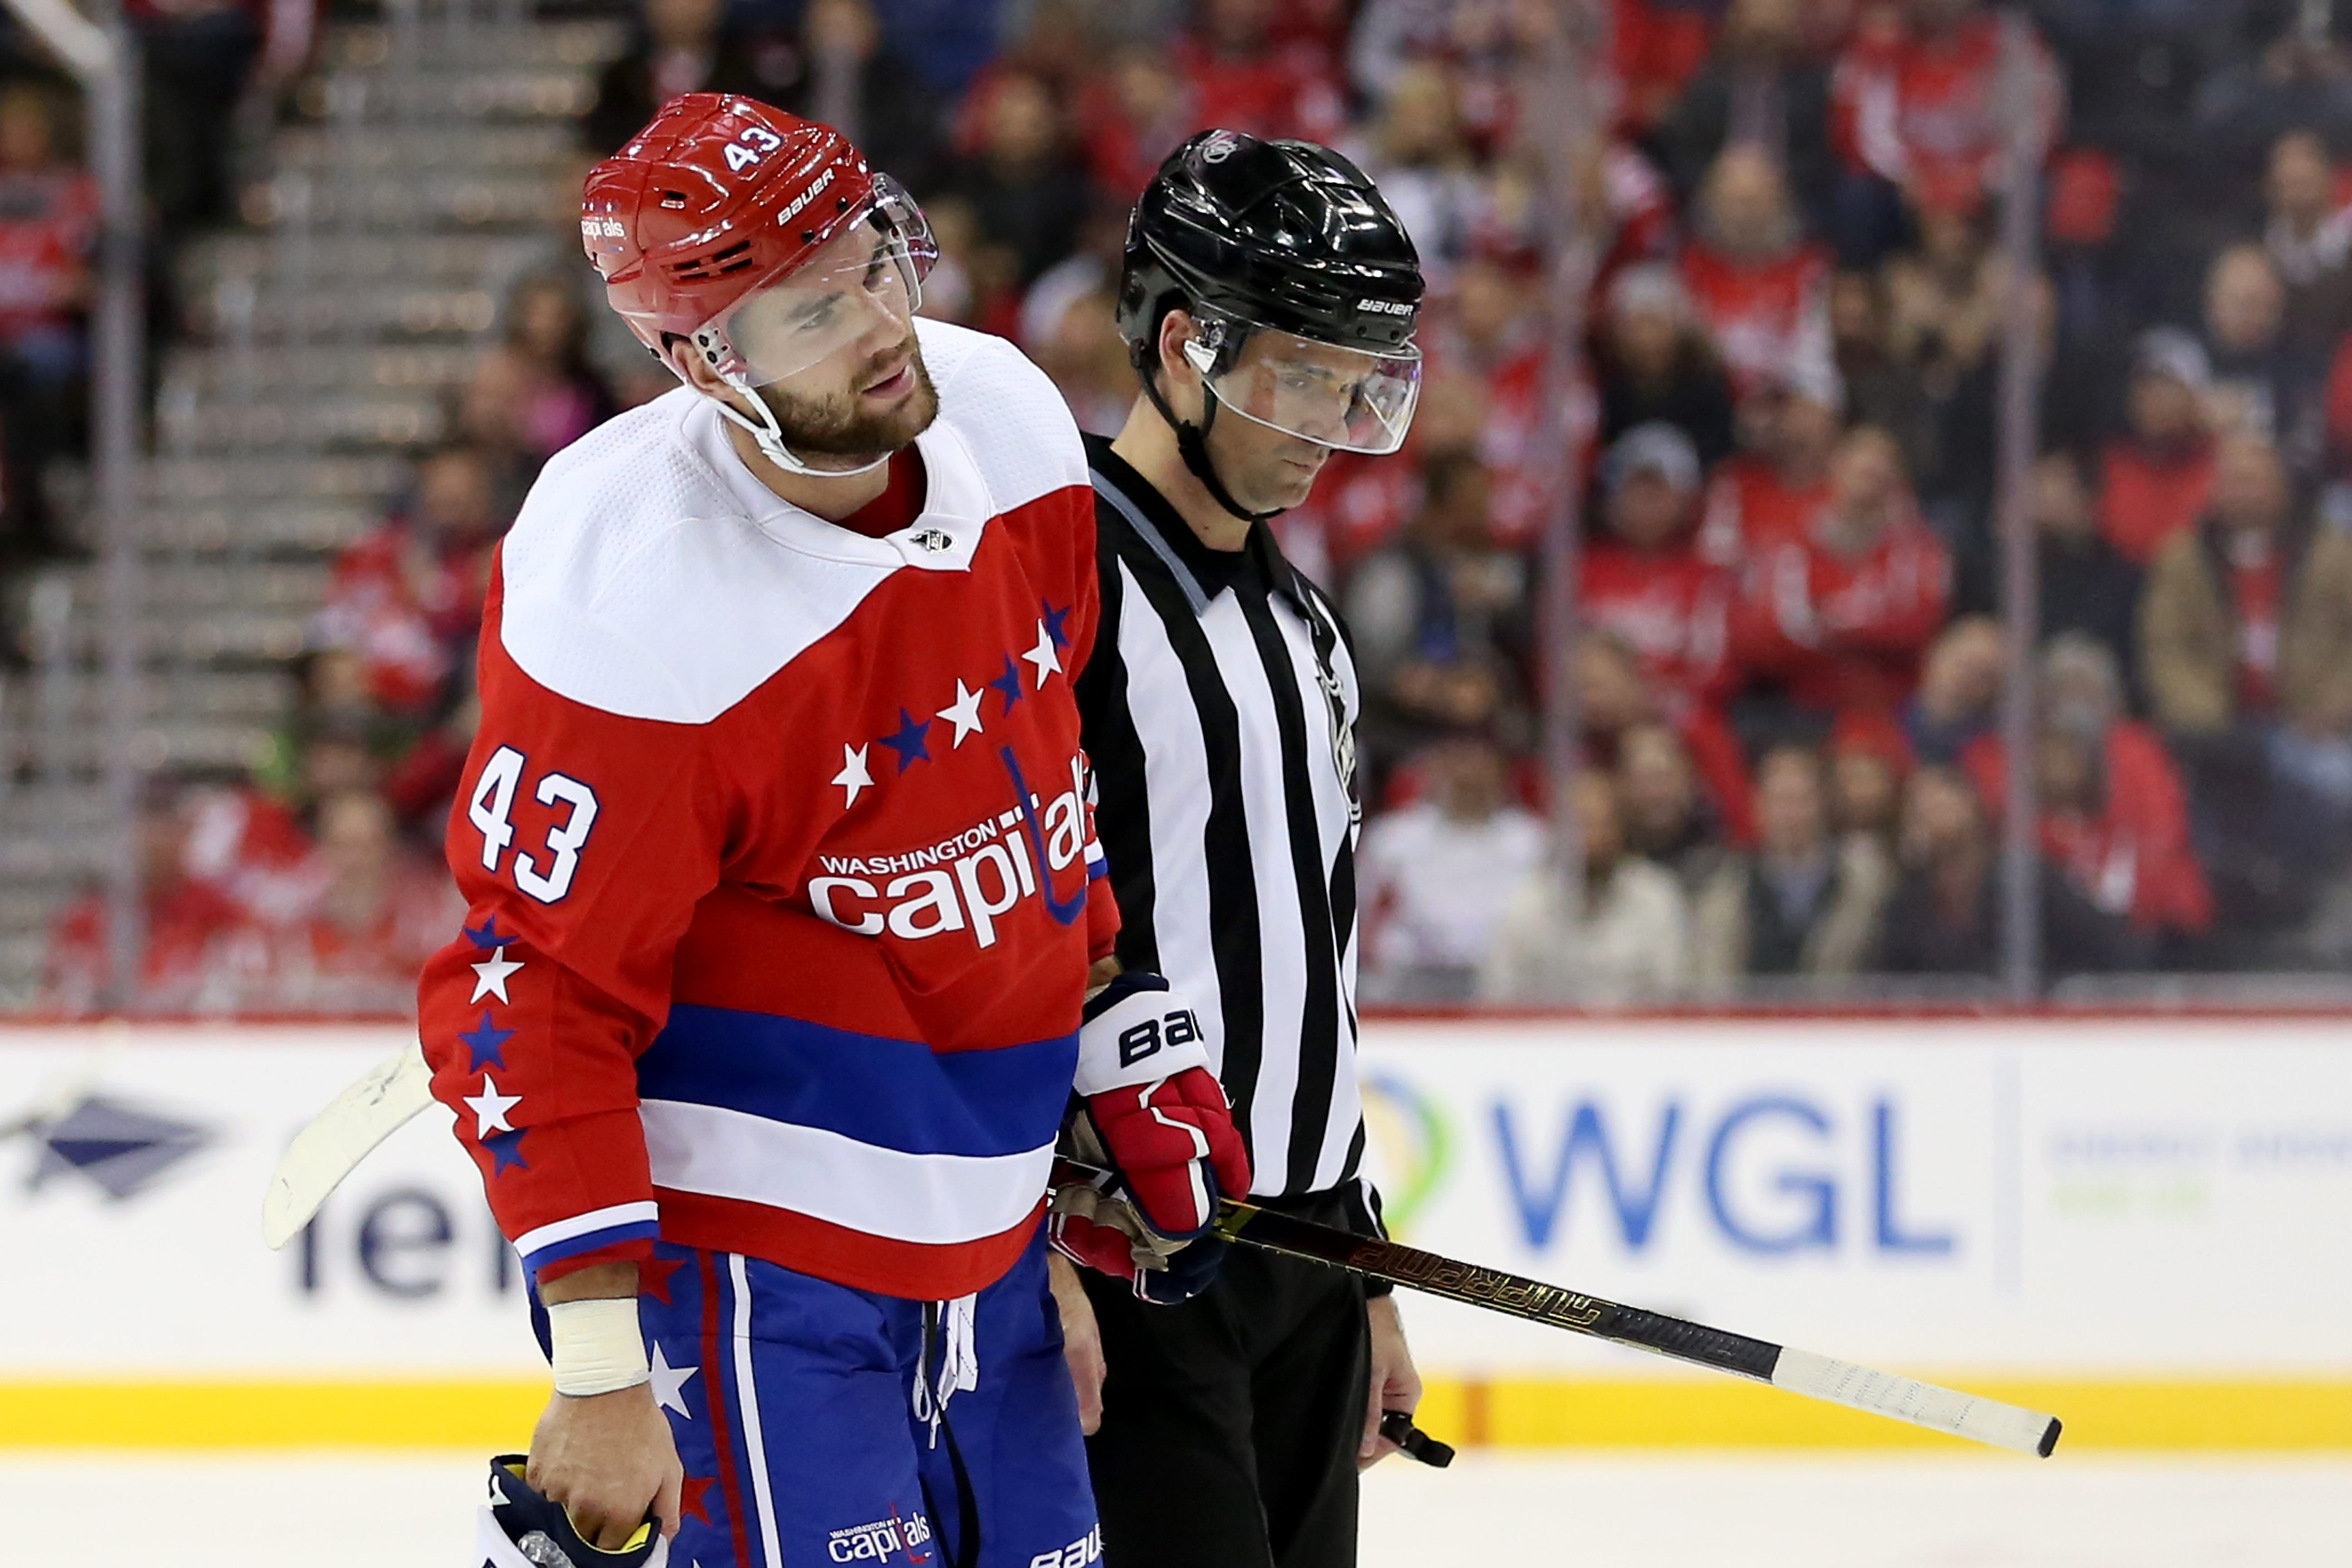 Capitals' Tom Wilson Ejected For Yet Another Questionable Hit In Ninth Game Back From Suspension